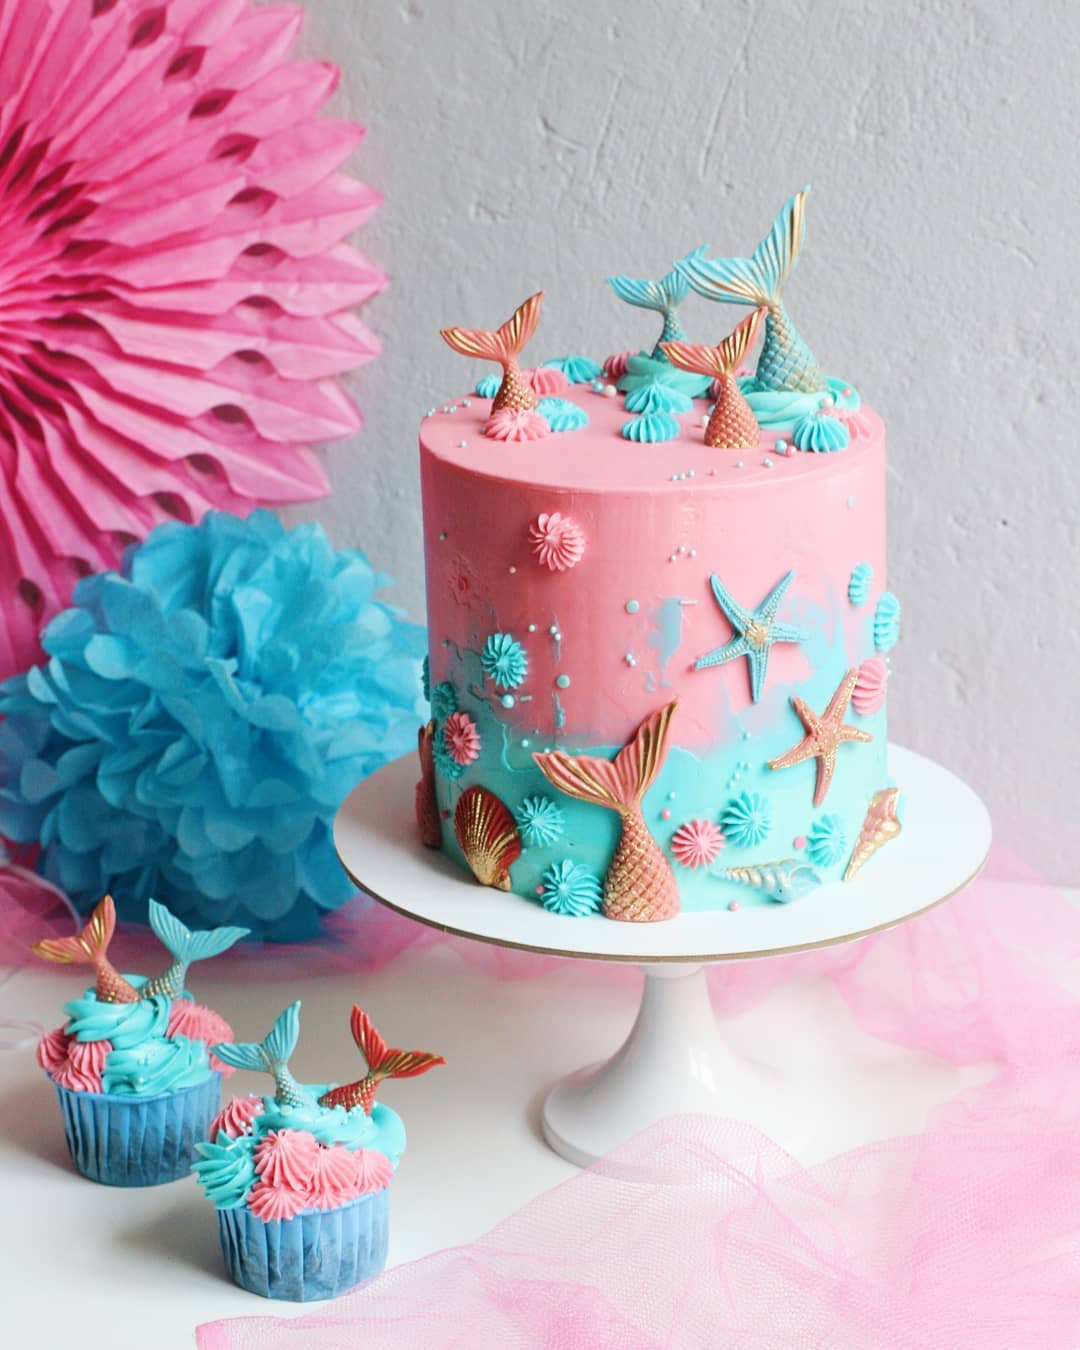 52 Mermaid Cakes Ideas You Are Sure to Love,mermaid cake ideas sheet cake,mermaid cake party ideas,mermaid cake template